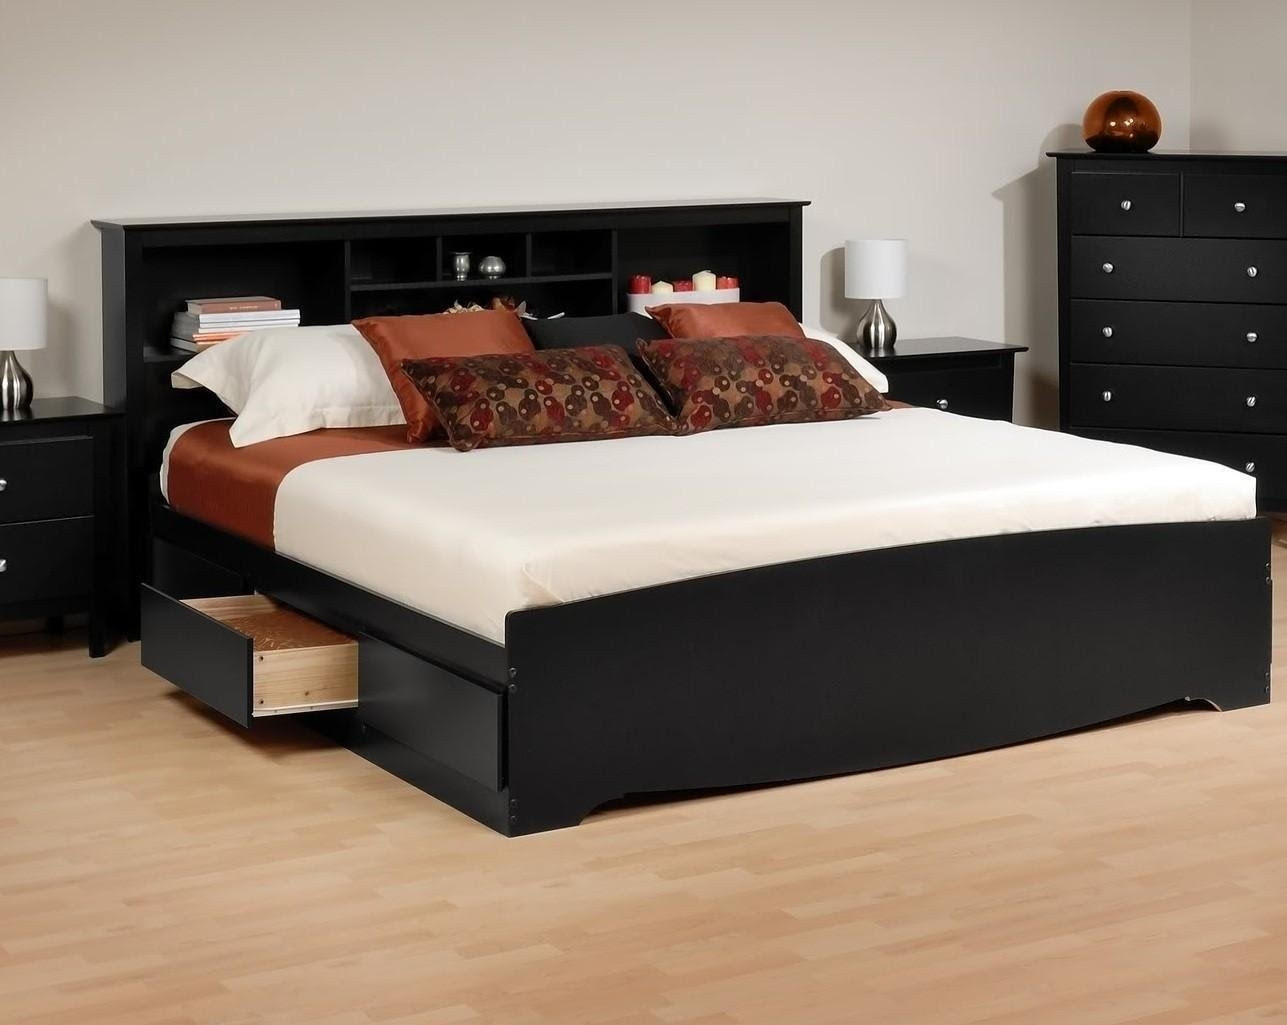 Simple Bedroom Furniture Designs Walpaper Designer Ideas Traditional Sets Ikea Decorating Arts And Crafts Modern Master Basic Apppie Org